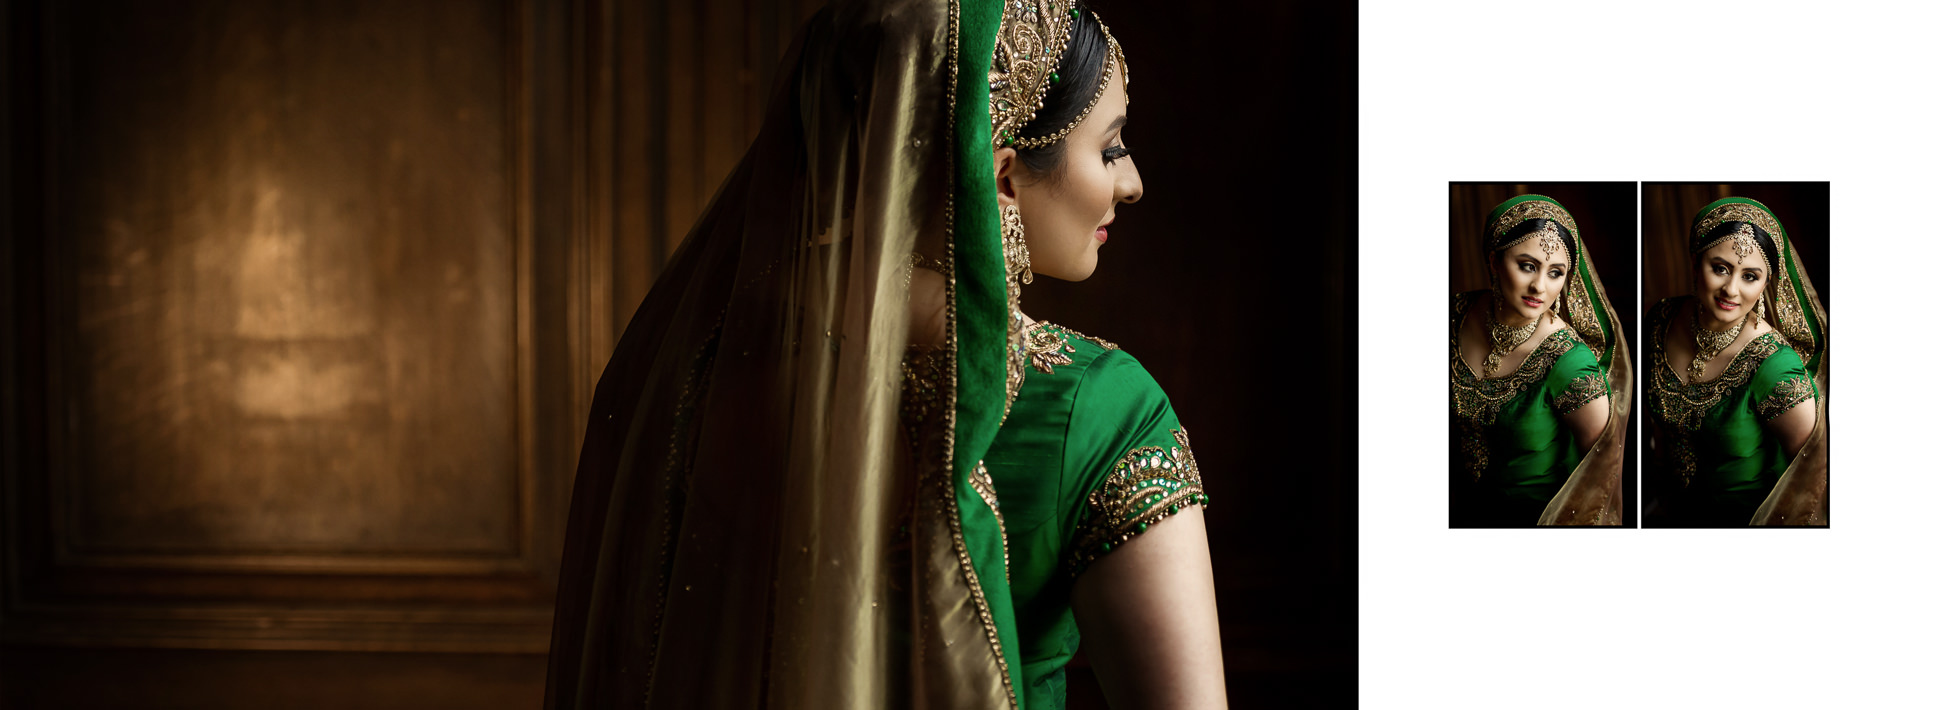 indian-wedding-photographer-hindu-3-of-28